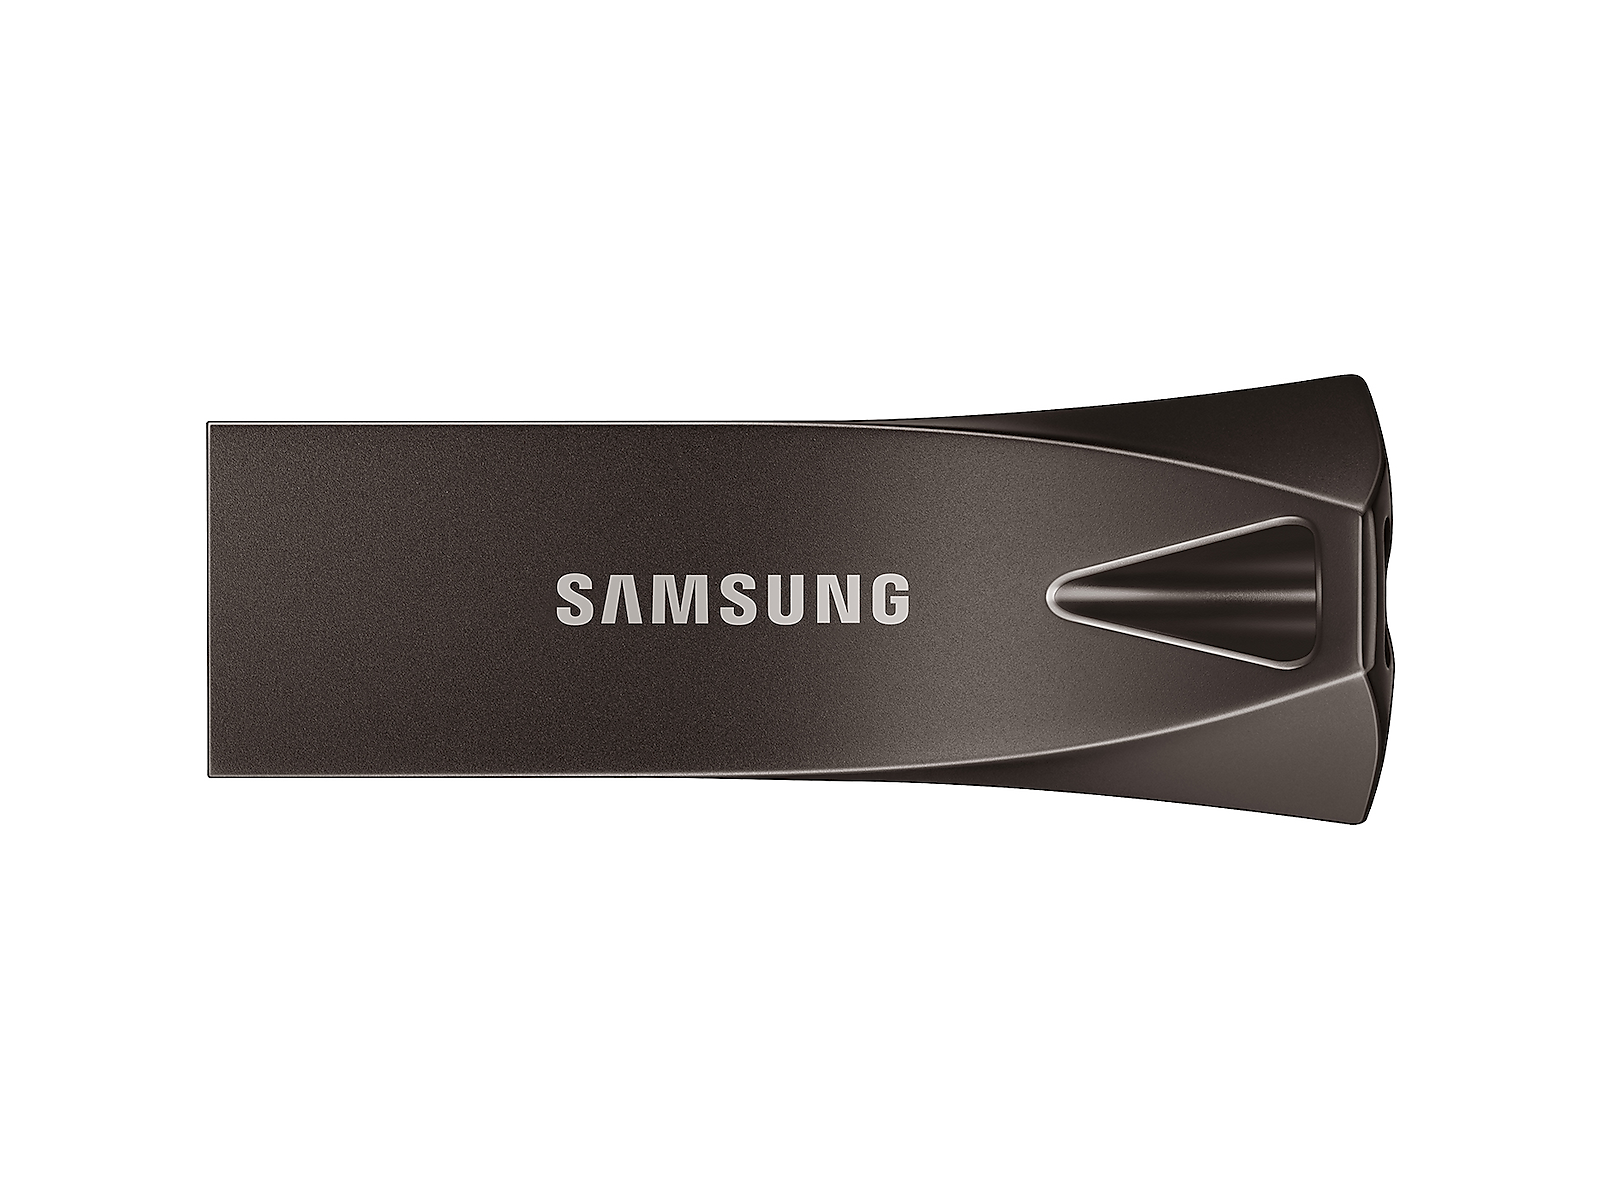 Samsung BAR Plus USB 3.1 Flash Drive 32GB in Titan Grey(MUF-32BE4/AM)